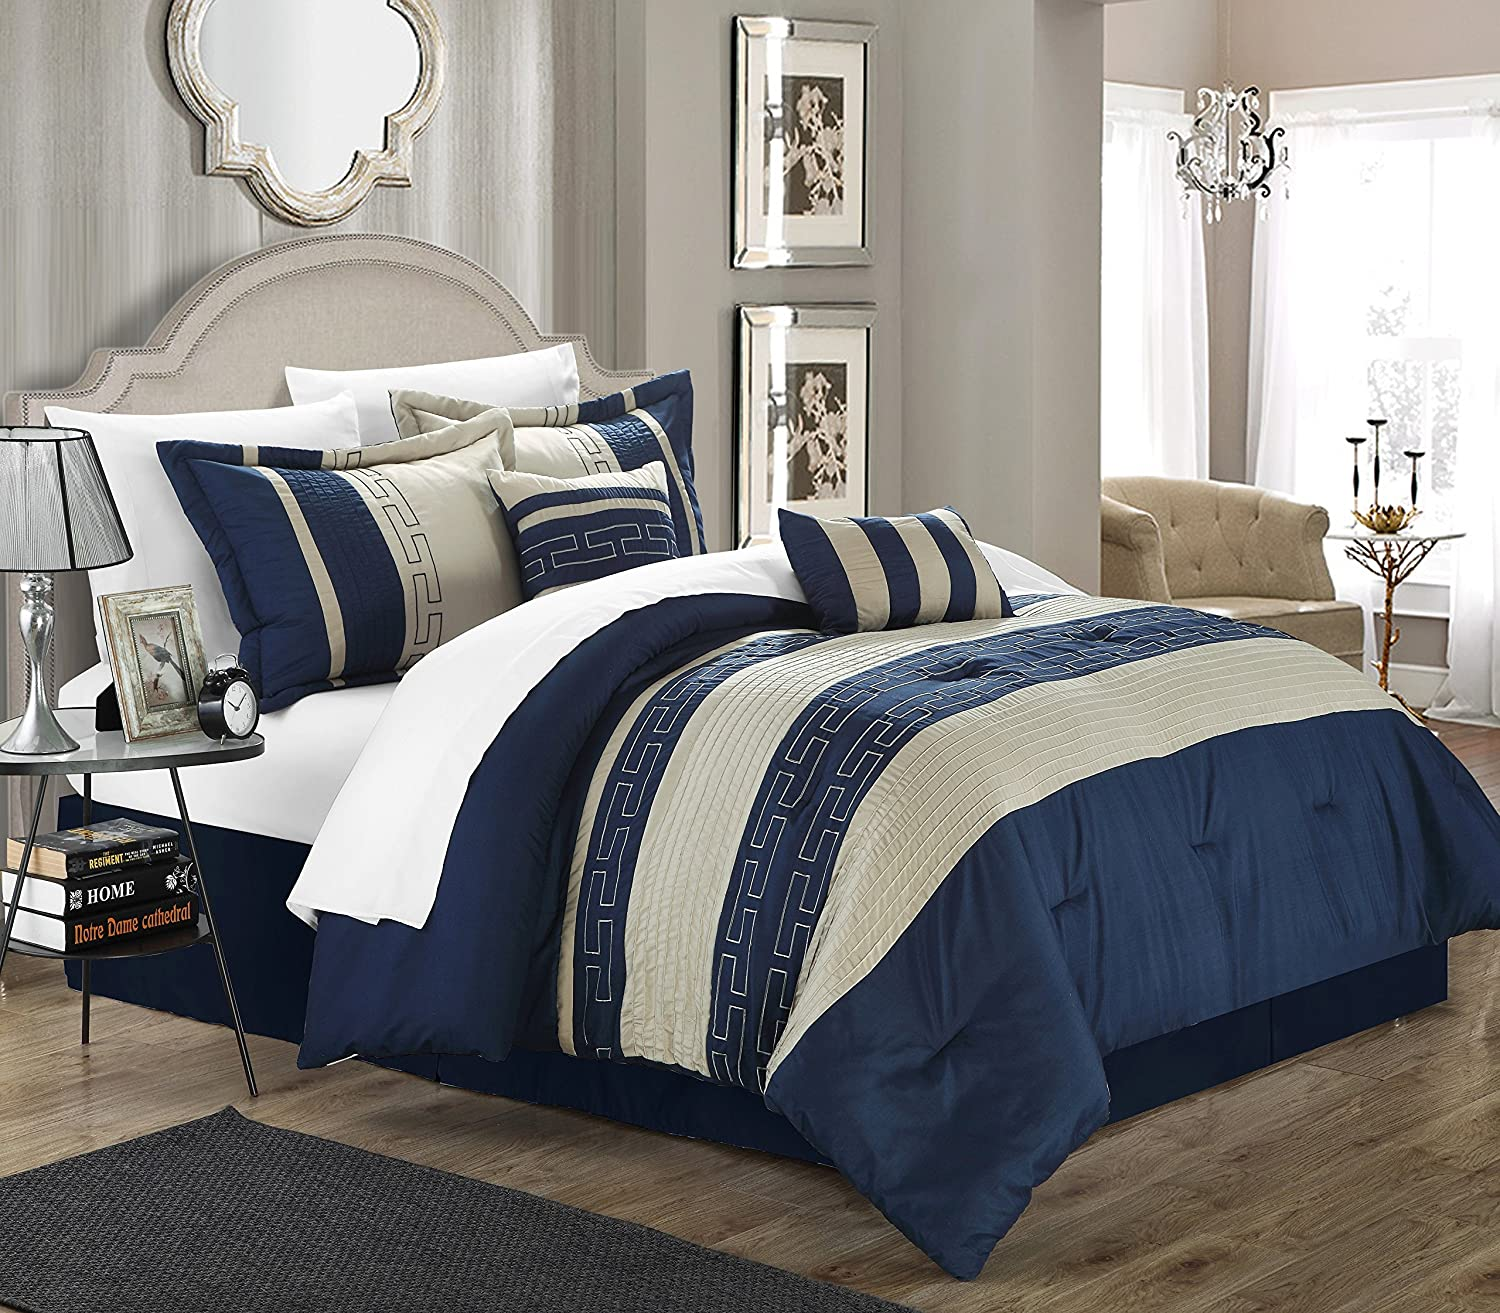 Charmant Amazon.com: Chic Home Carlton 6 Piece Comforter Set, Queen Size, Blue: Home  U0026 Kitchen